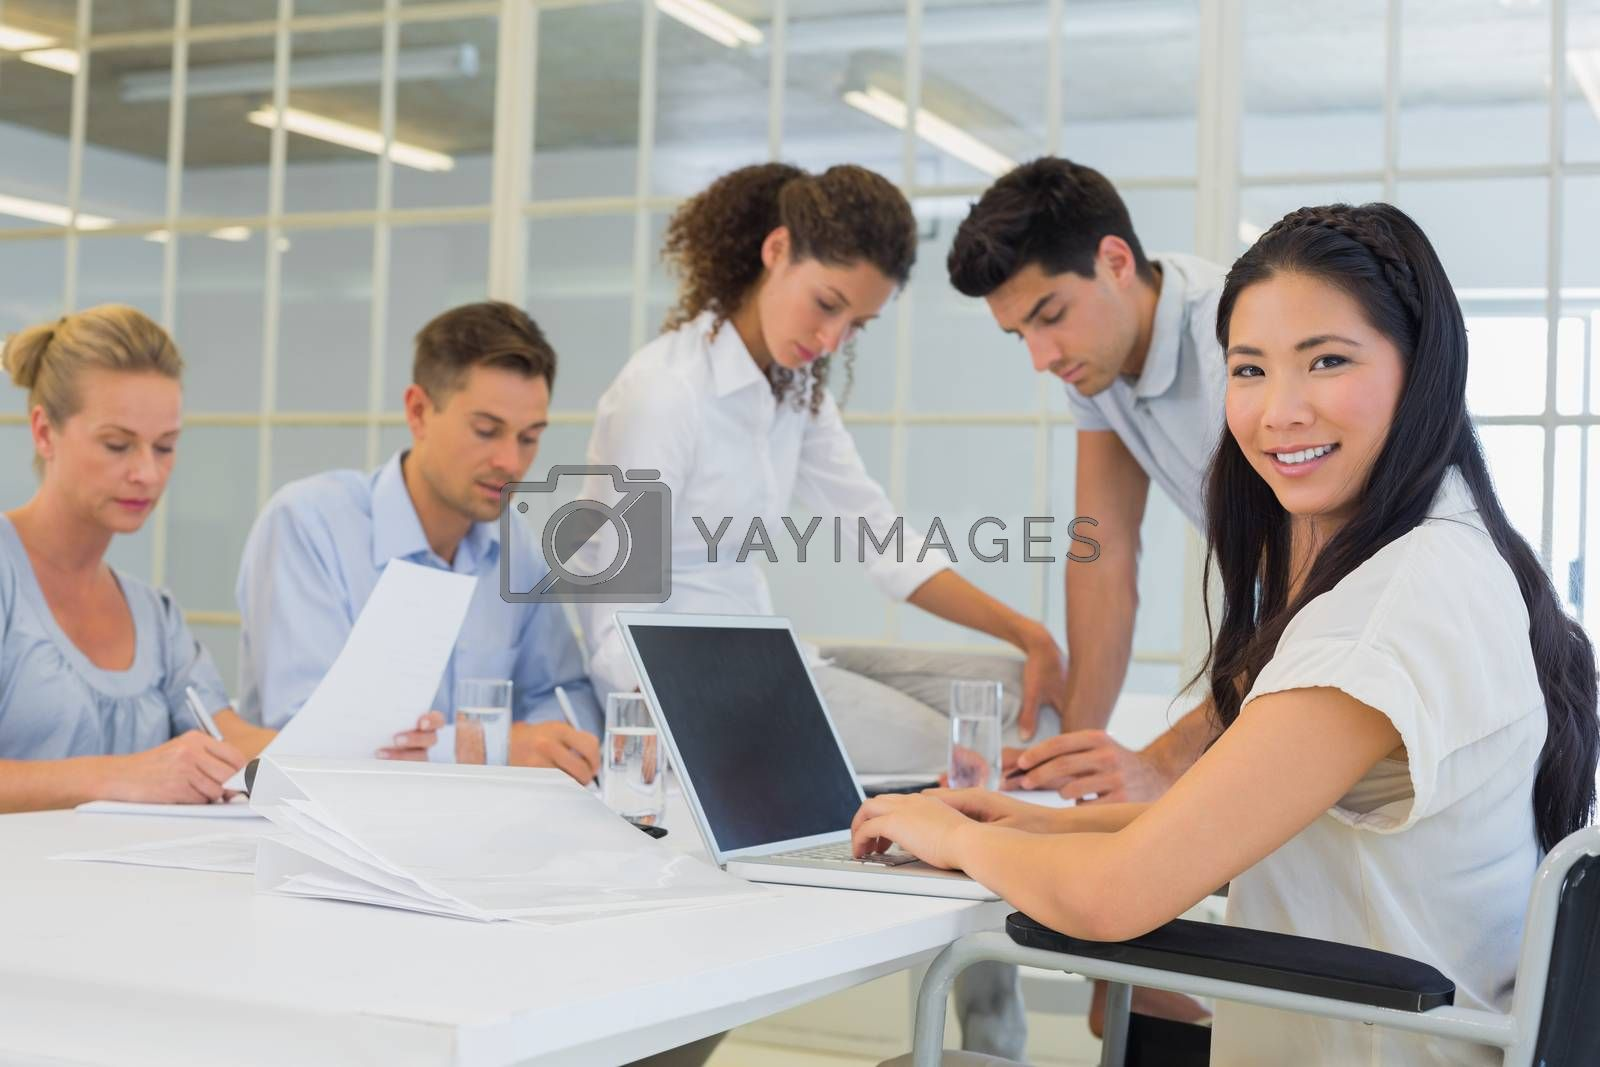 Royalty free image of Casual businesswoman smiling at camera during meeting by Wavebreakmedia